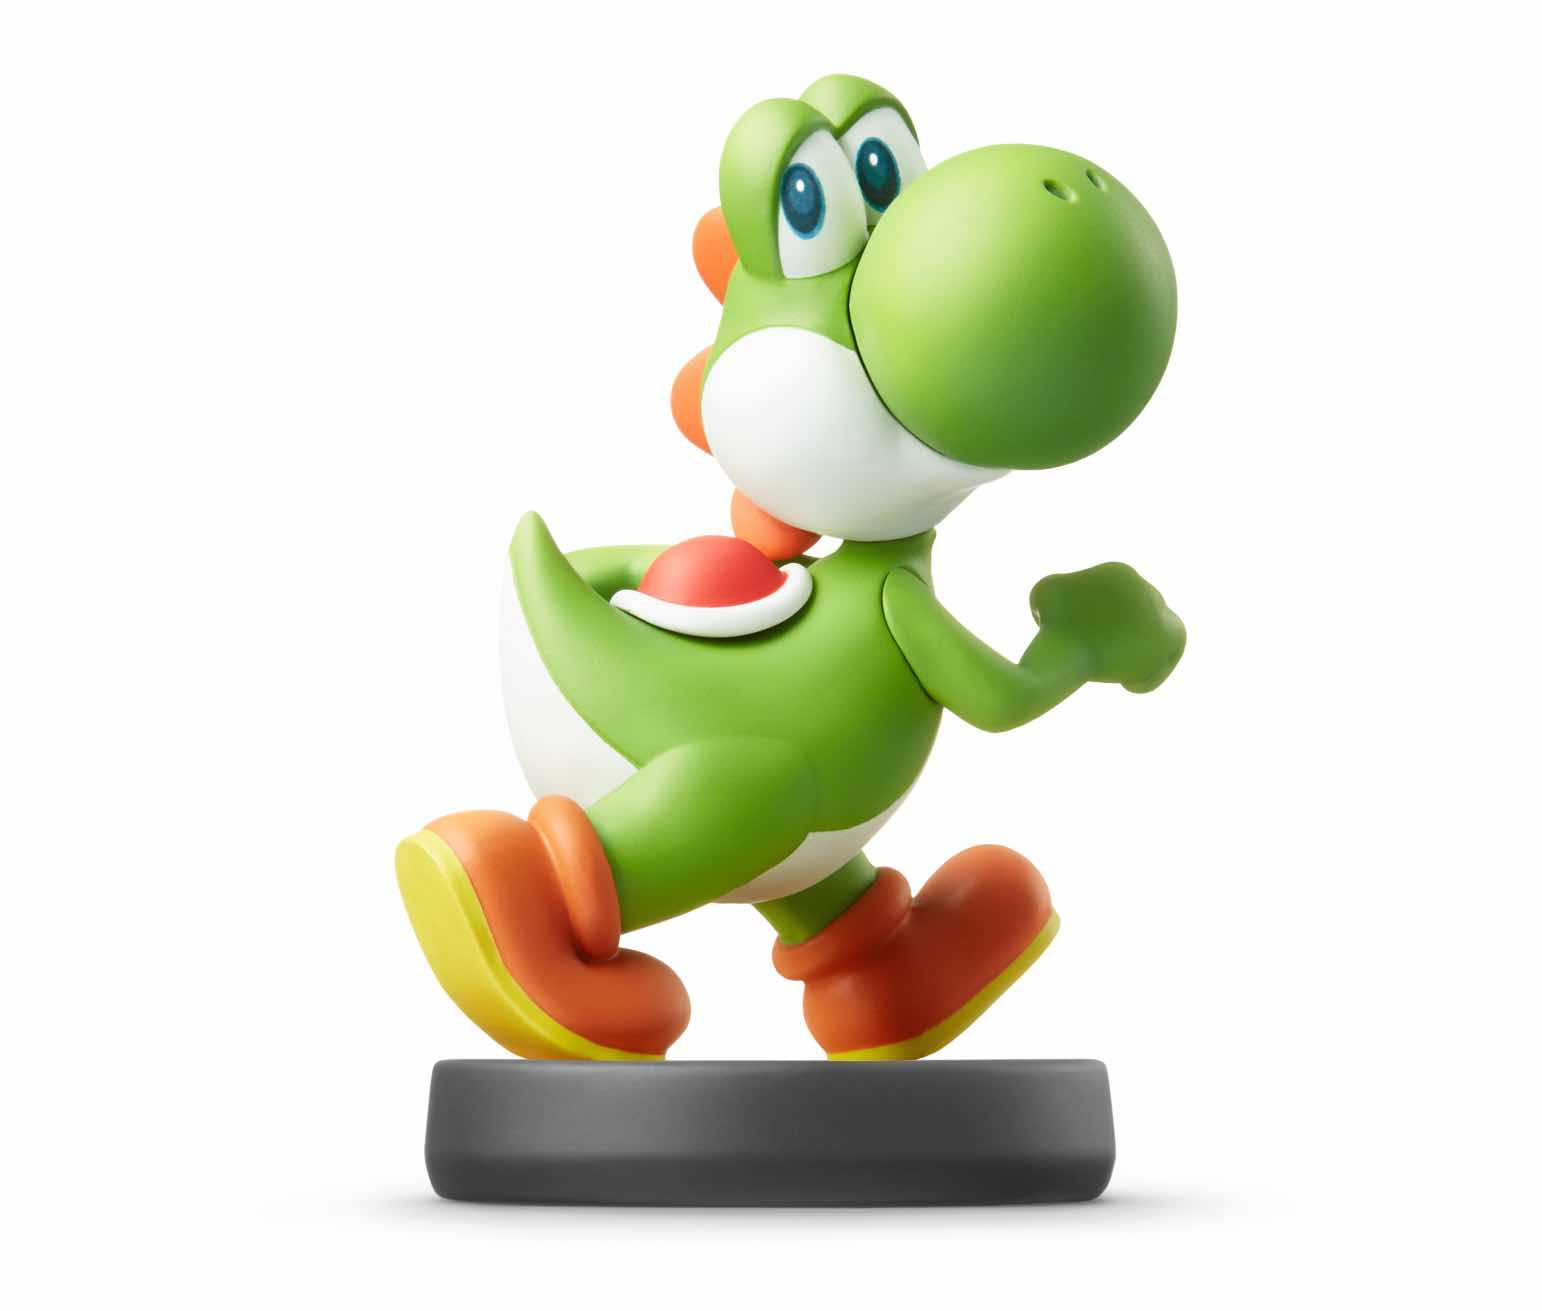 Warriors Orochi 4 How To Unlock Characters: Yoshi Amiibo (No. 3 Super Smash Bros. Collection